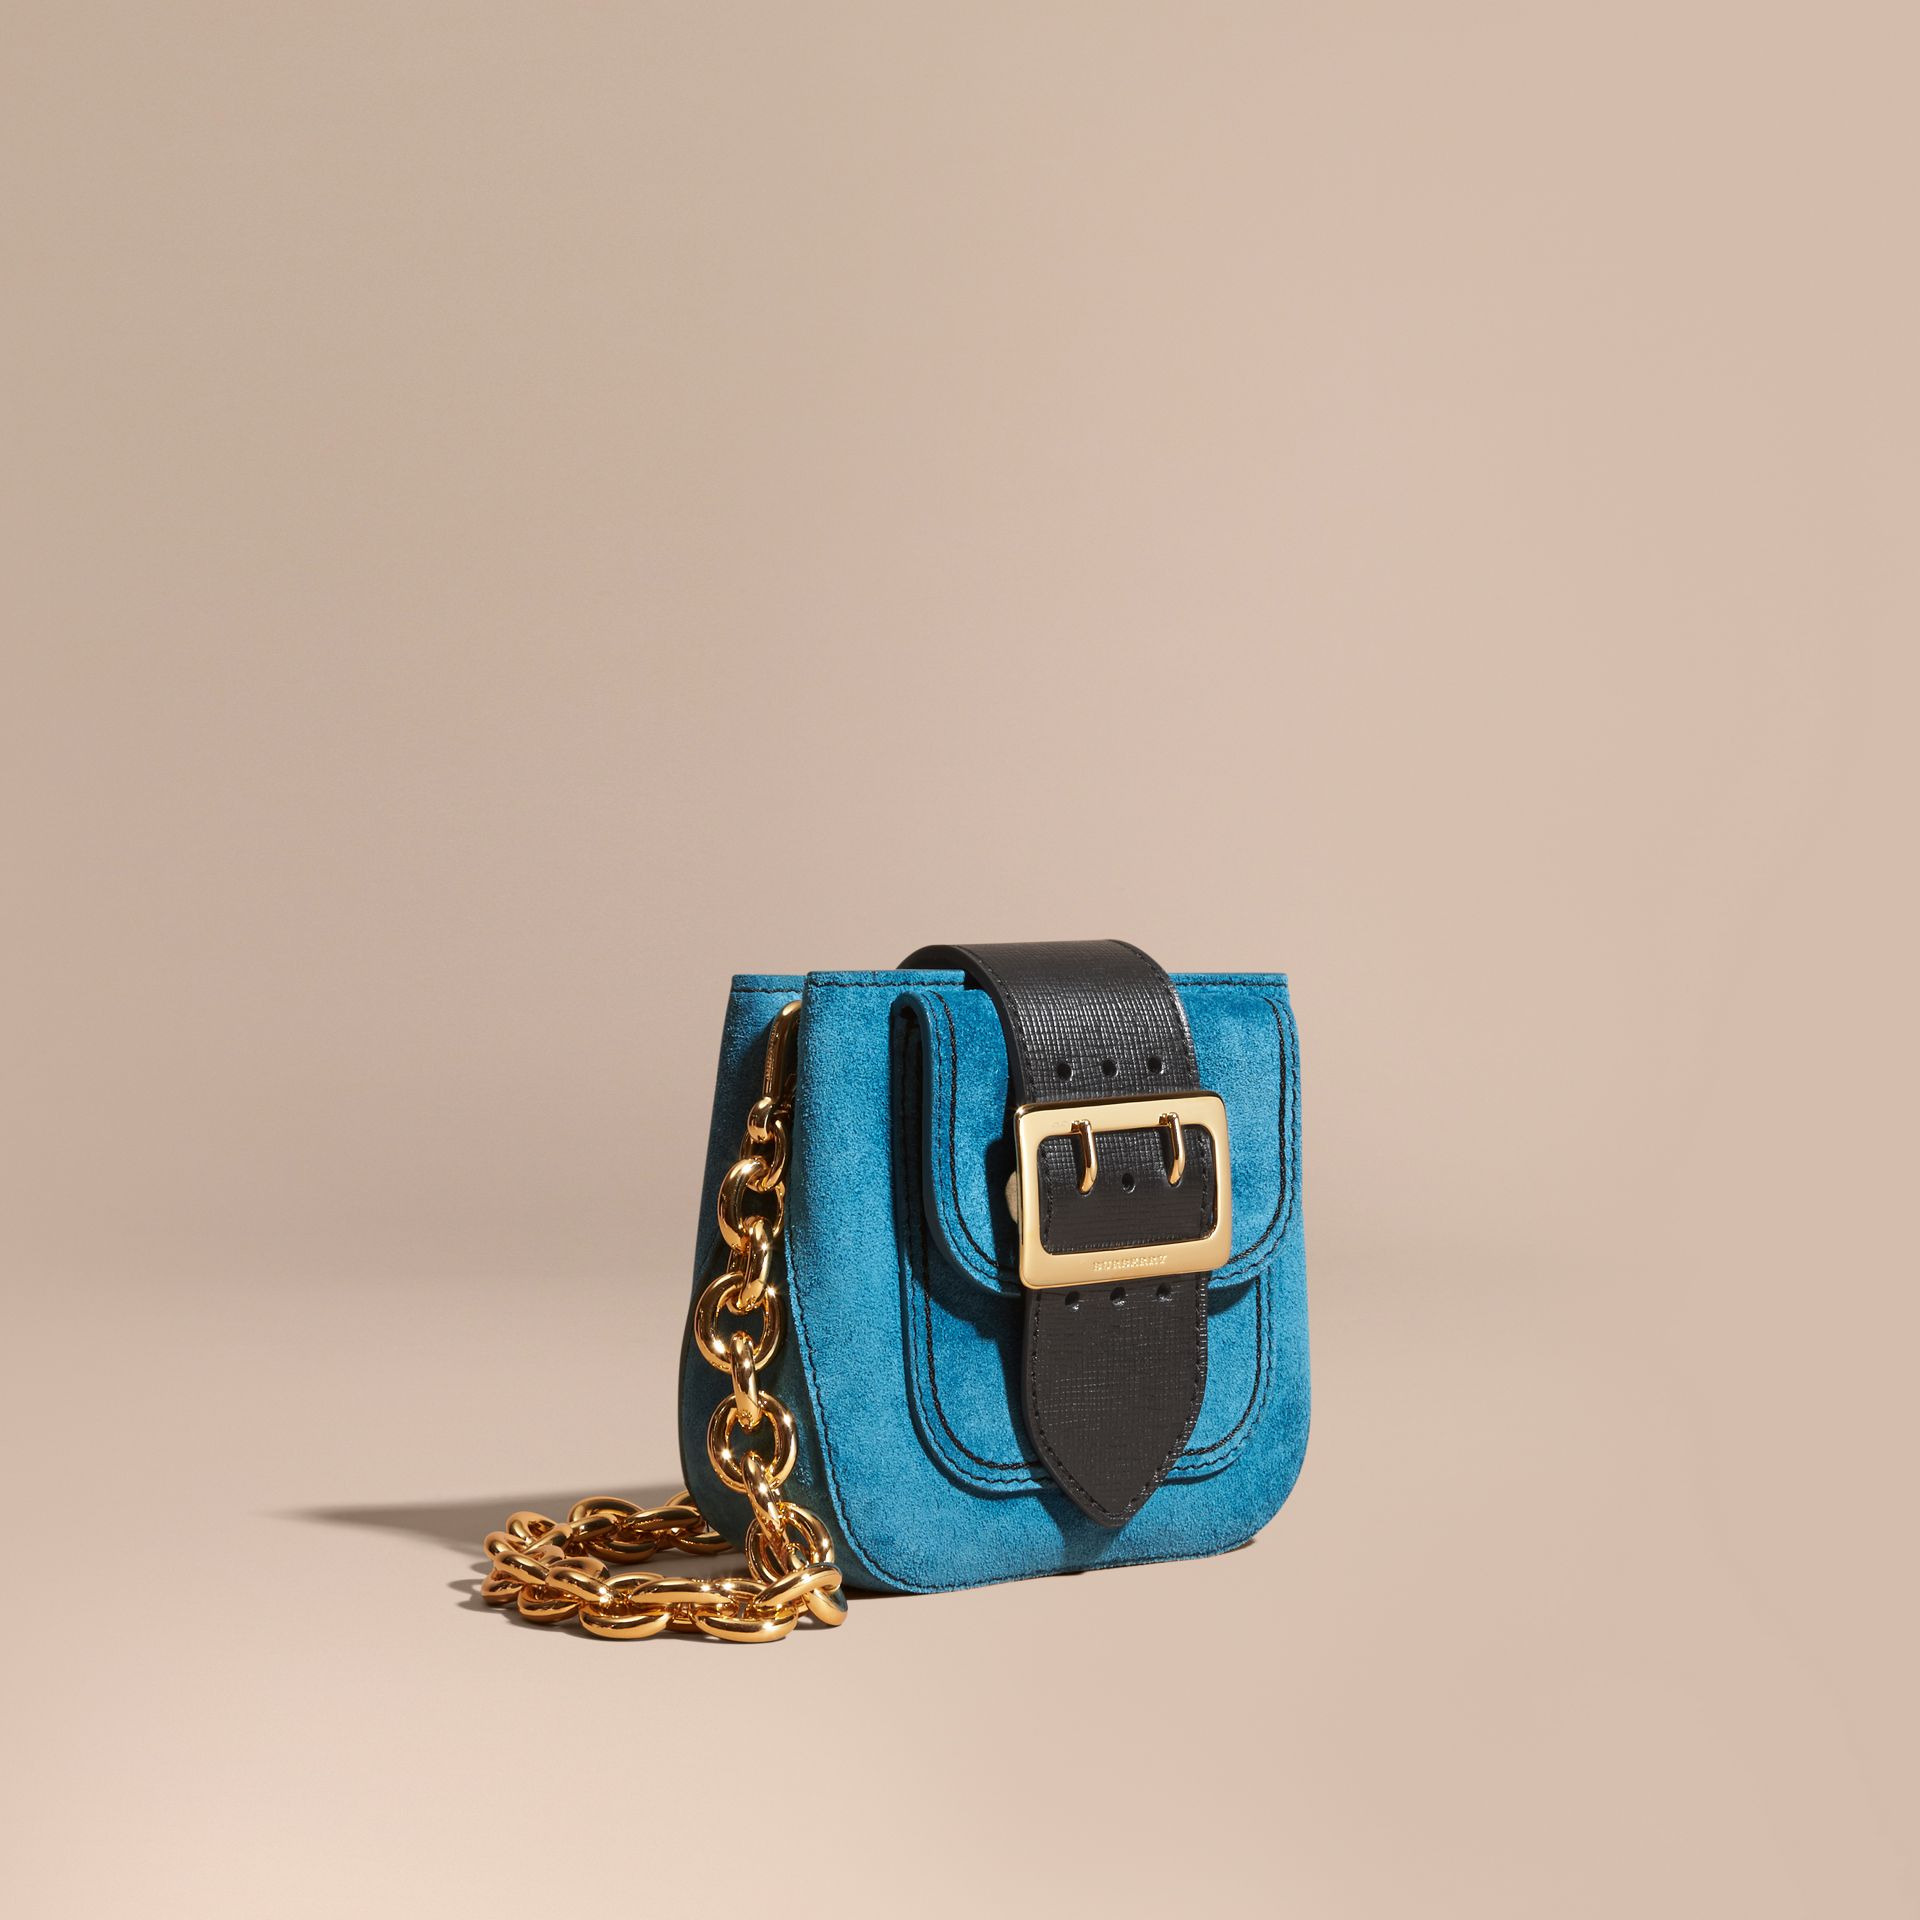 Peacock blue The Small Square Buckle Bag in Suede and Leather Peacock Blue - gallery image 1